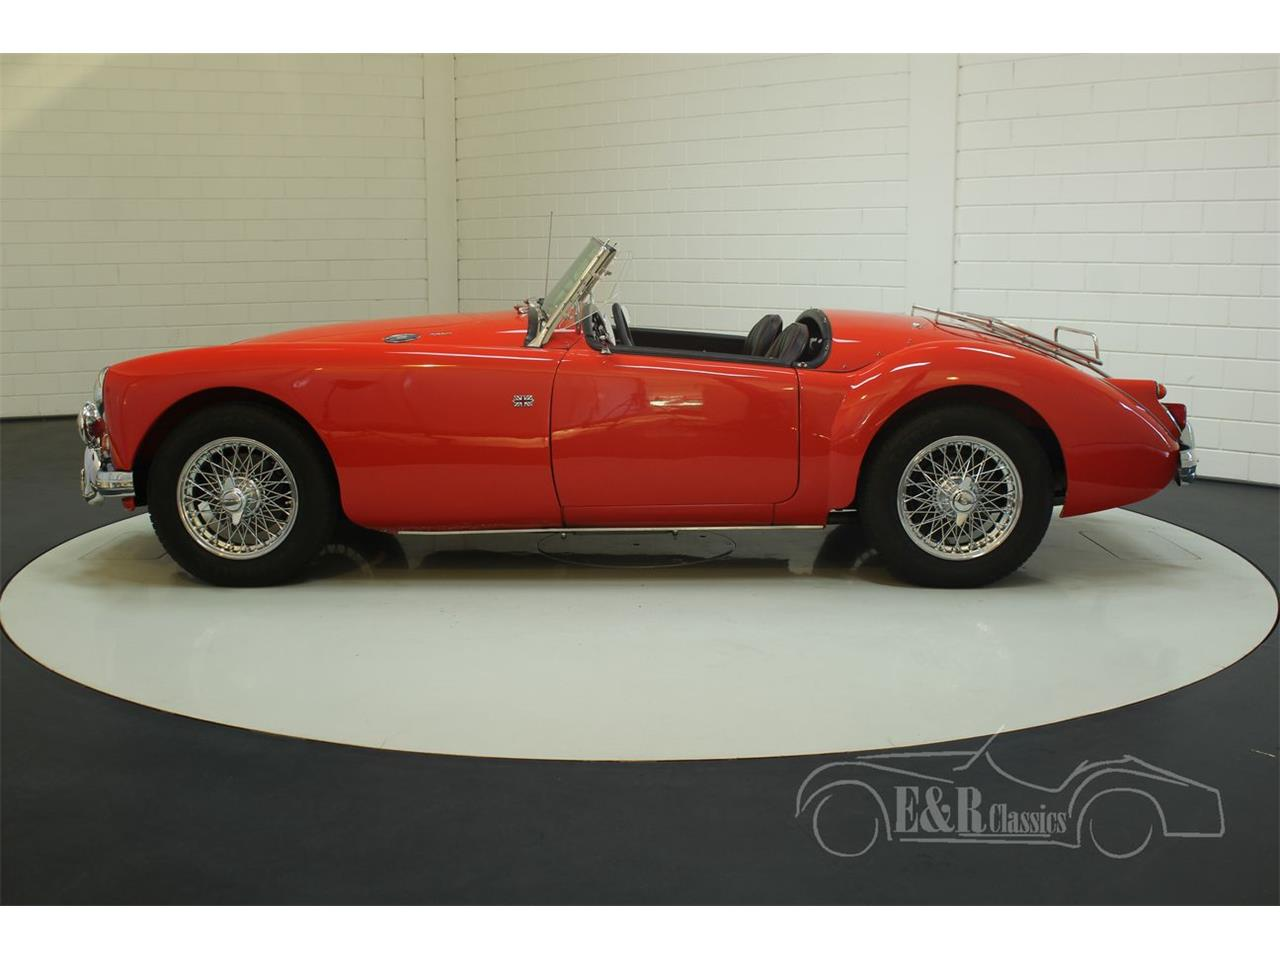 Large Picture of Classic 1962 MGA located in Noord-Brabant - $45,000.00 Offered by E & R Classics - QKGO